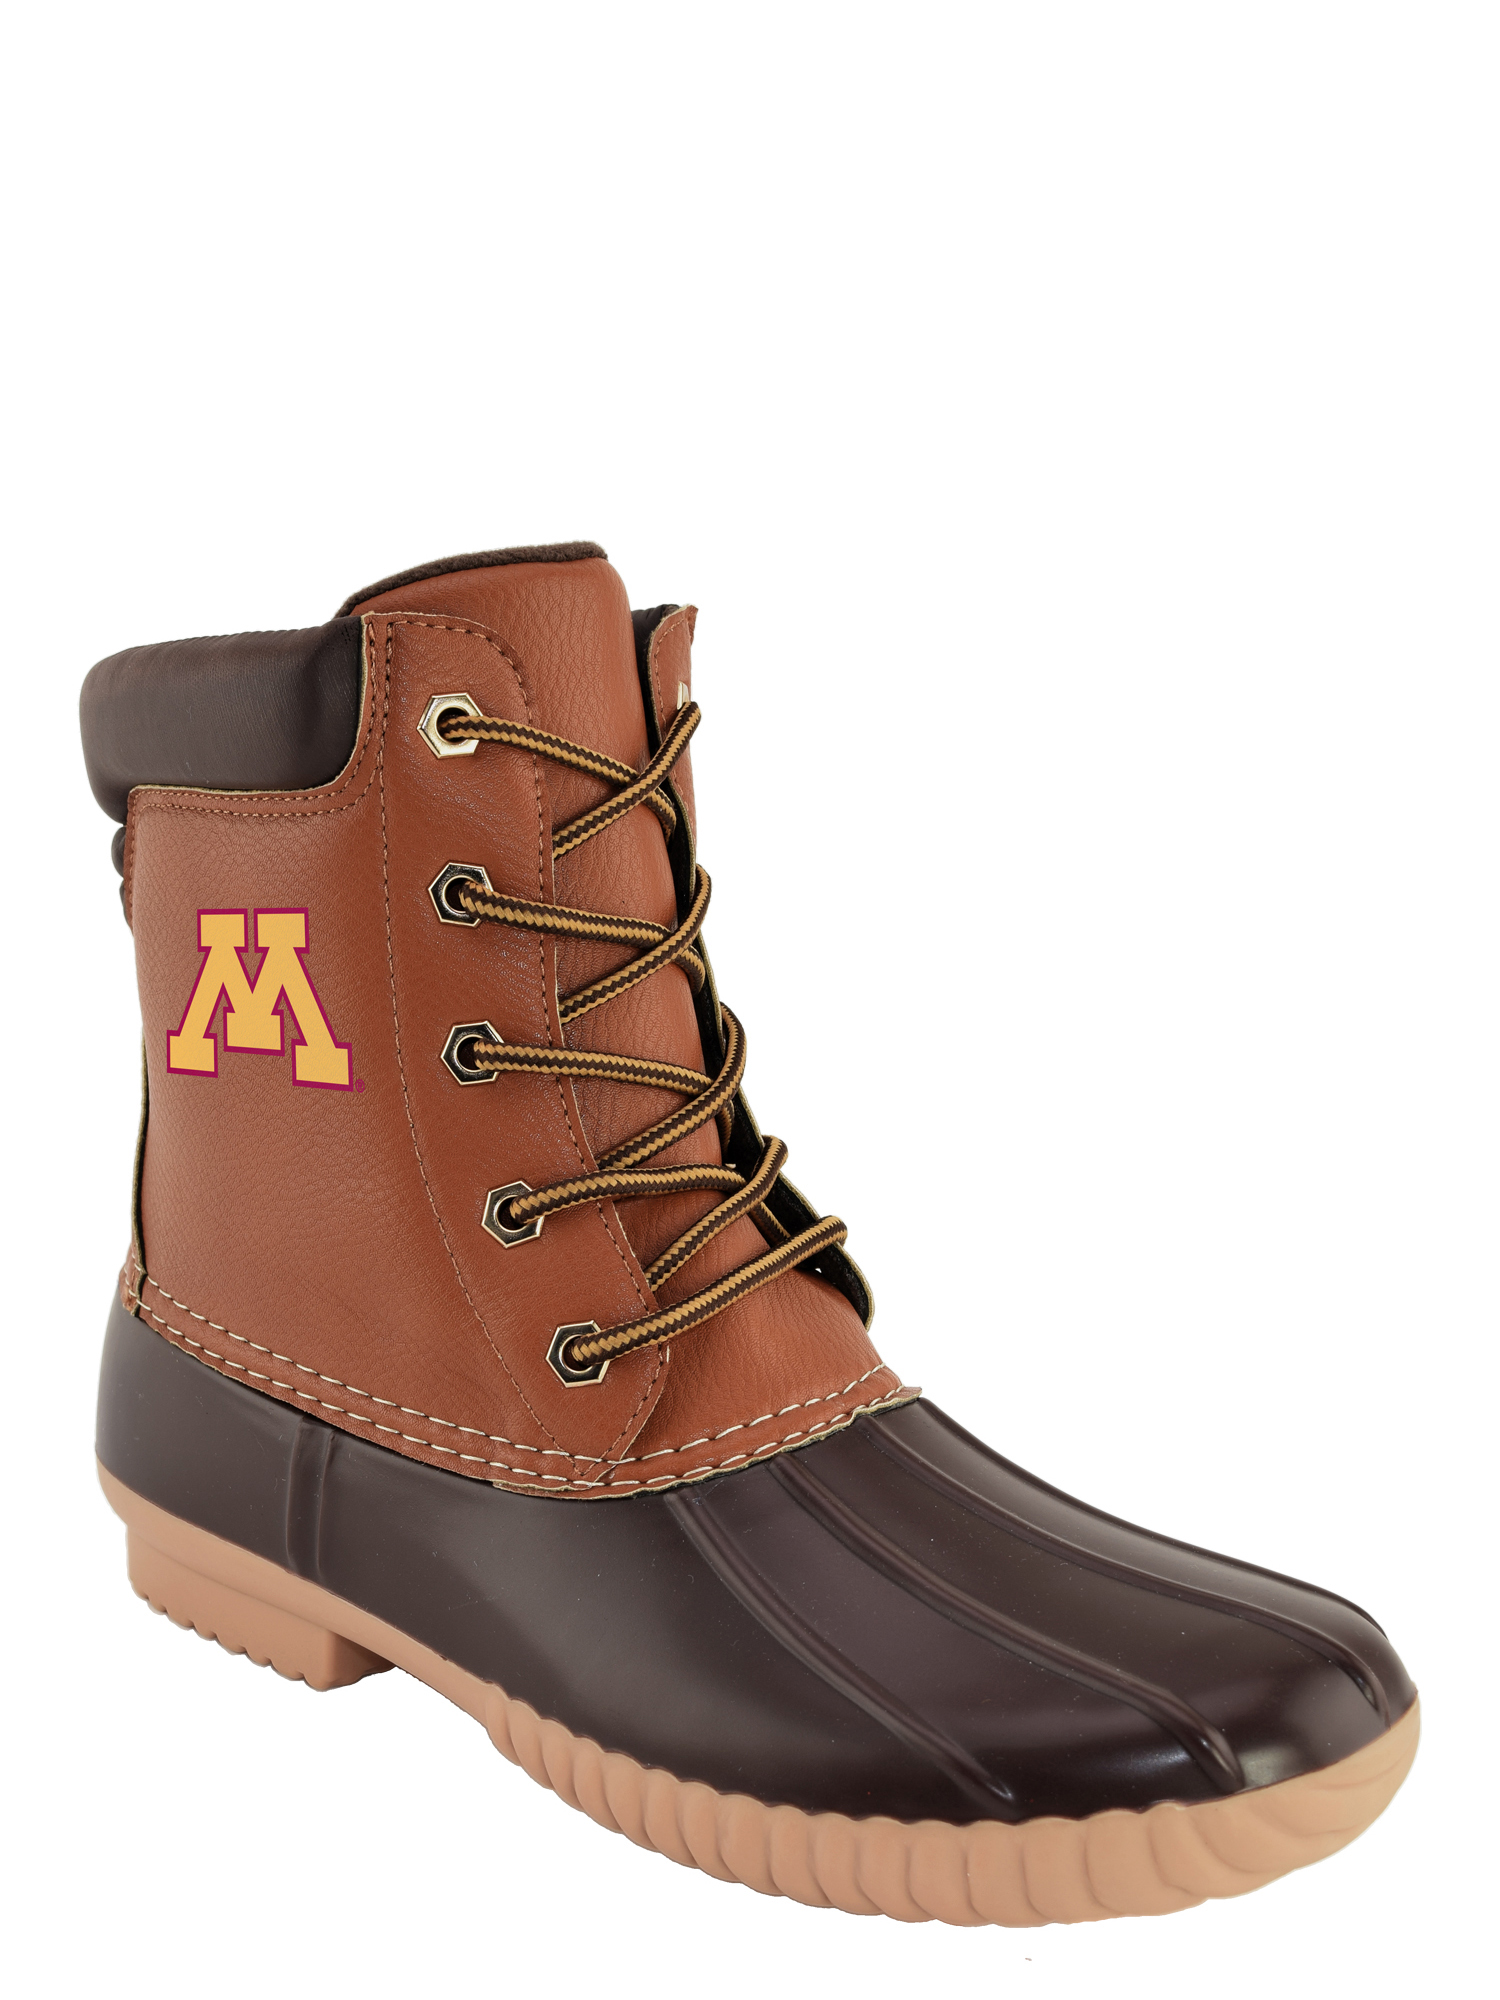 NCAA Men's Minnesota -Duck Boot Economical, stylish, and eye-catching shoes